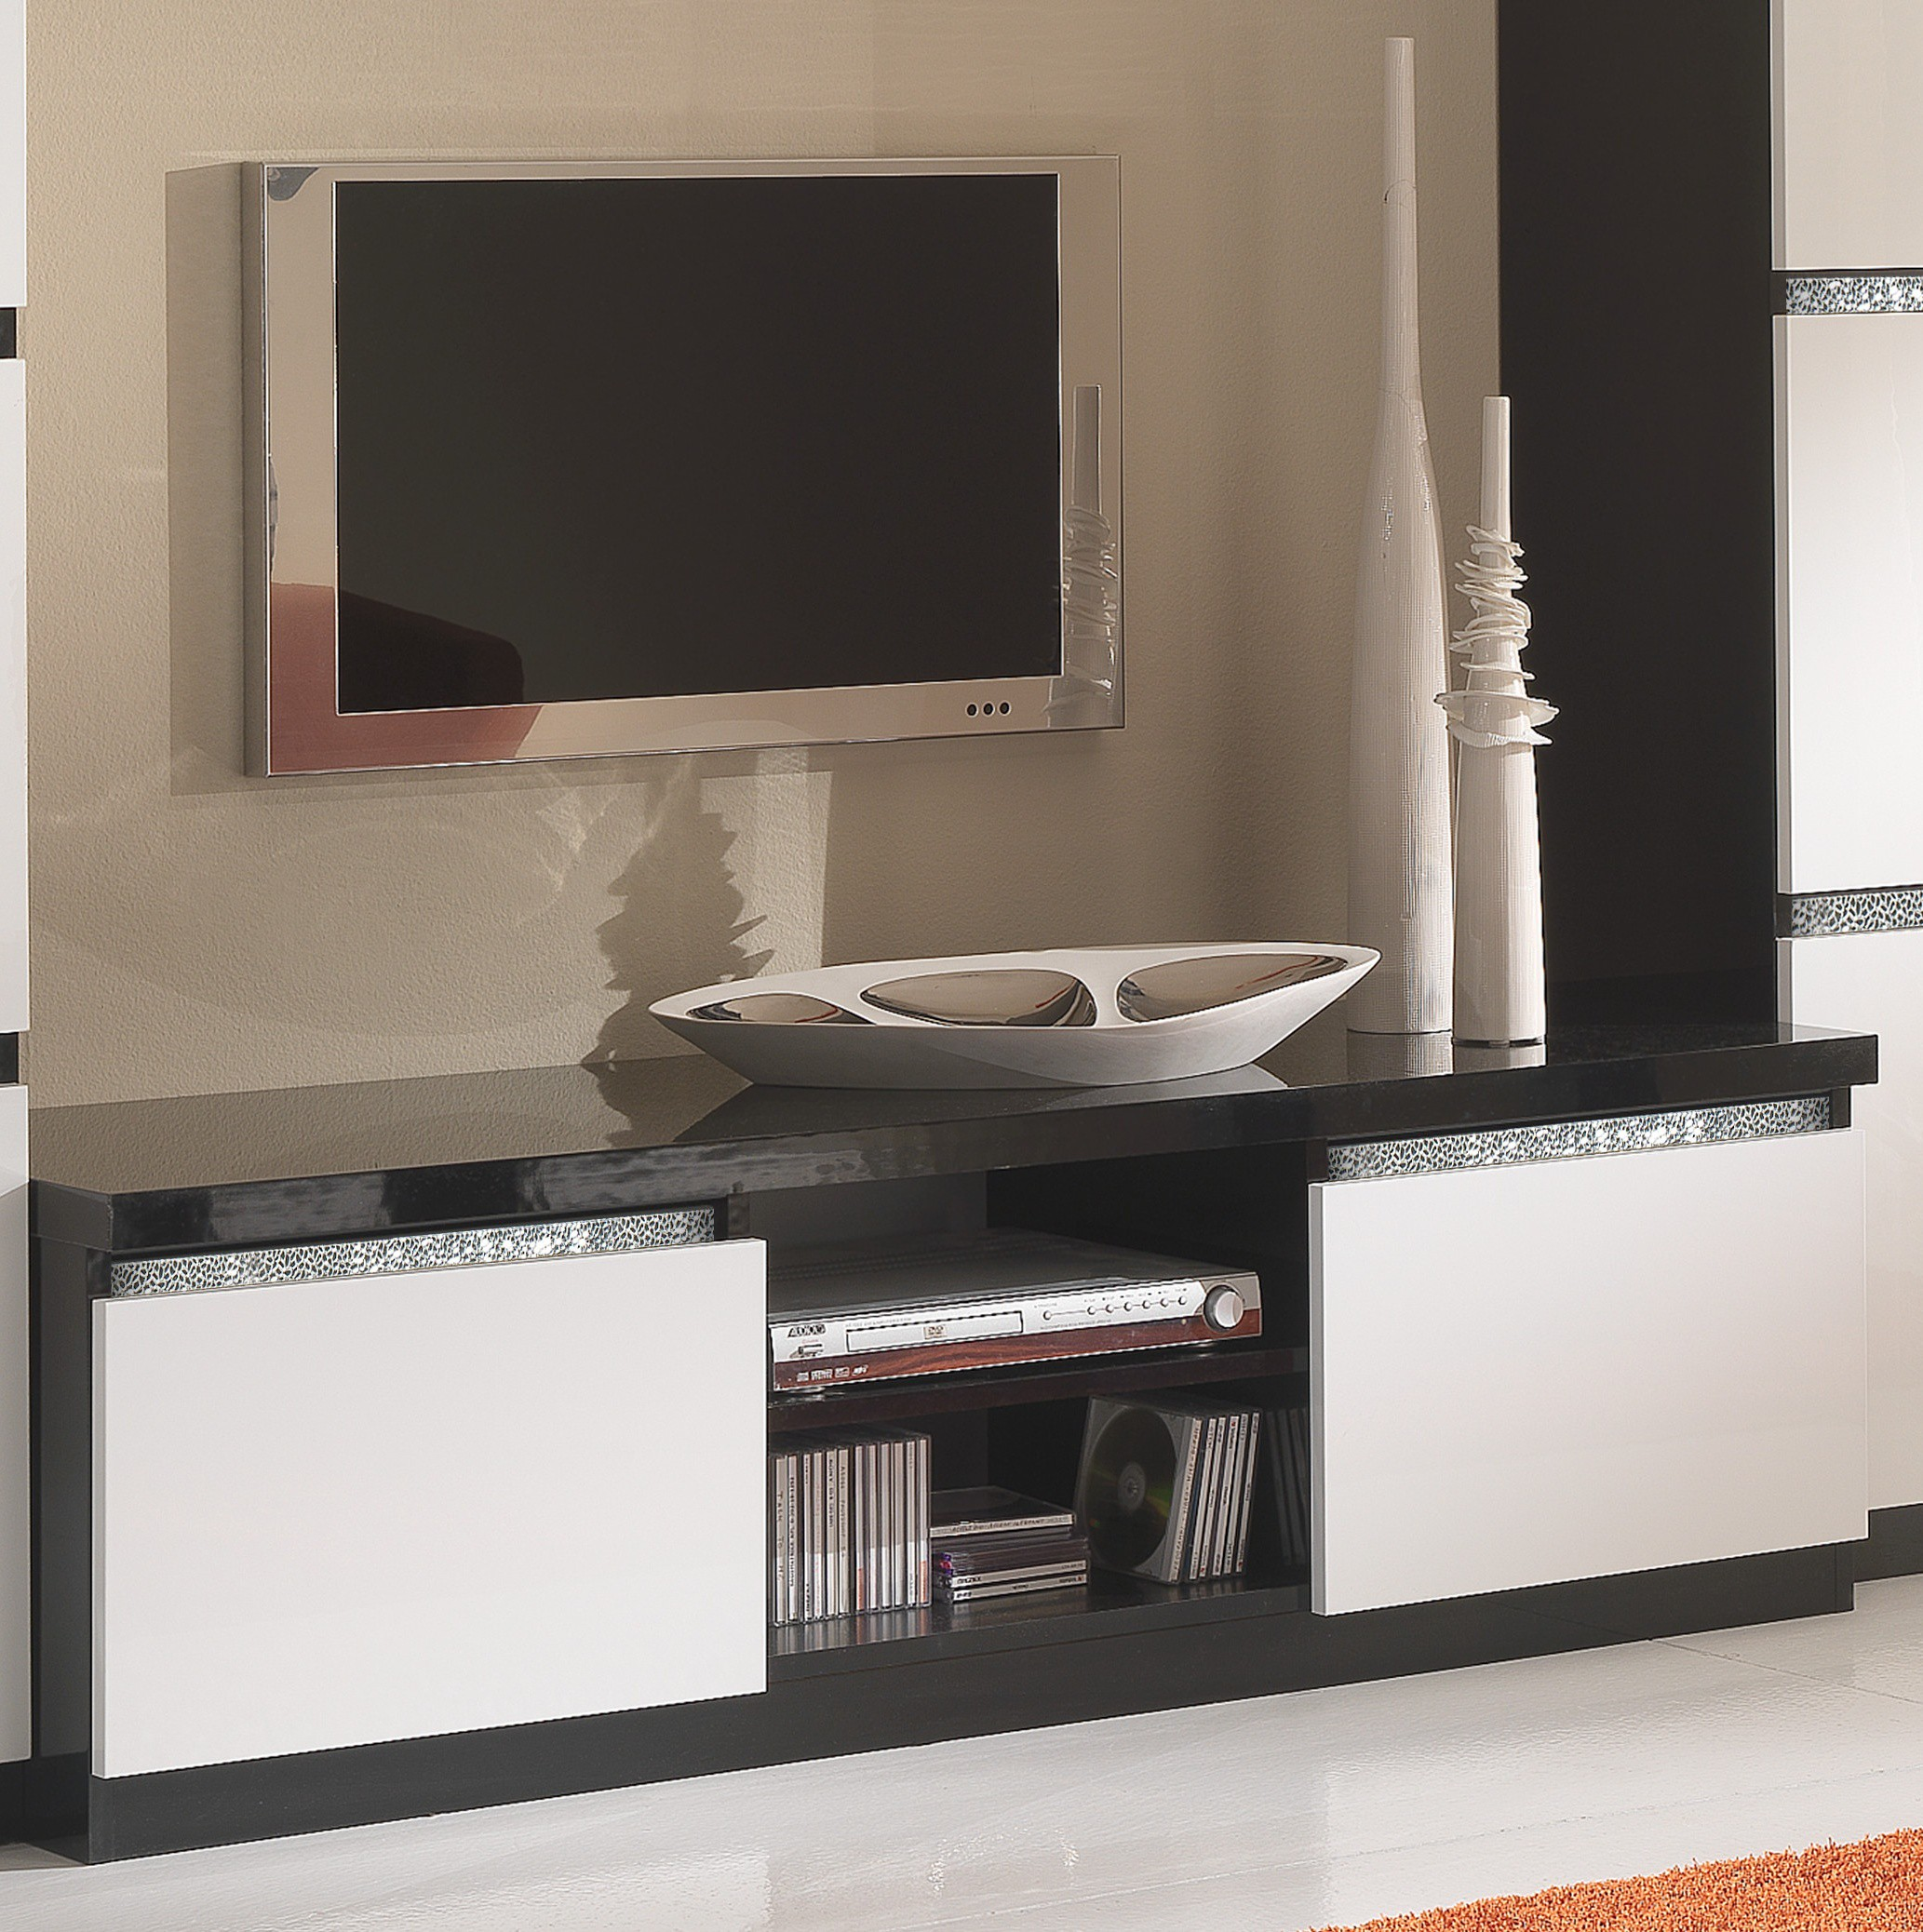 meuble tv blanc et noir id es de d coration int rieure french decor. Black Bedroom Furniture Sets. Home Design Ideas